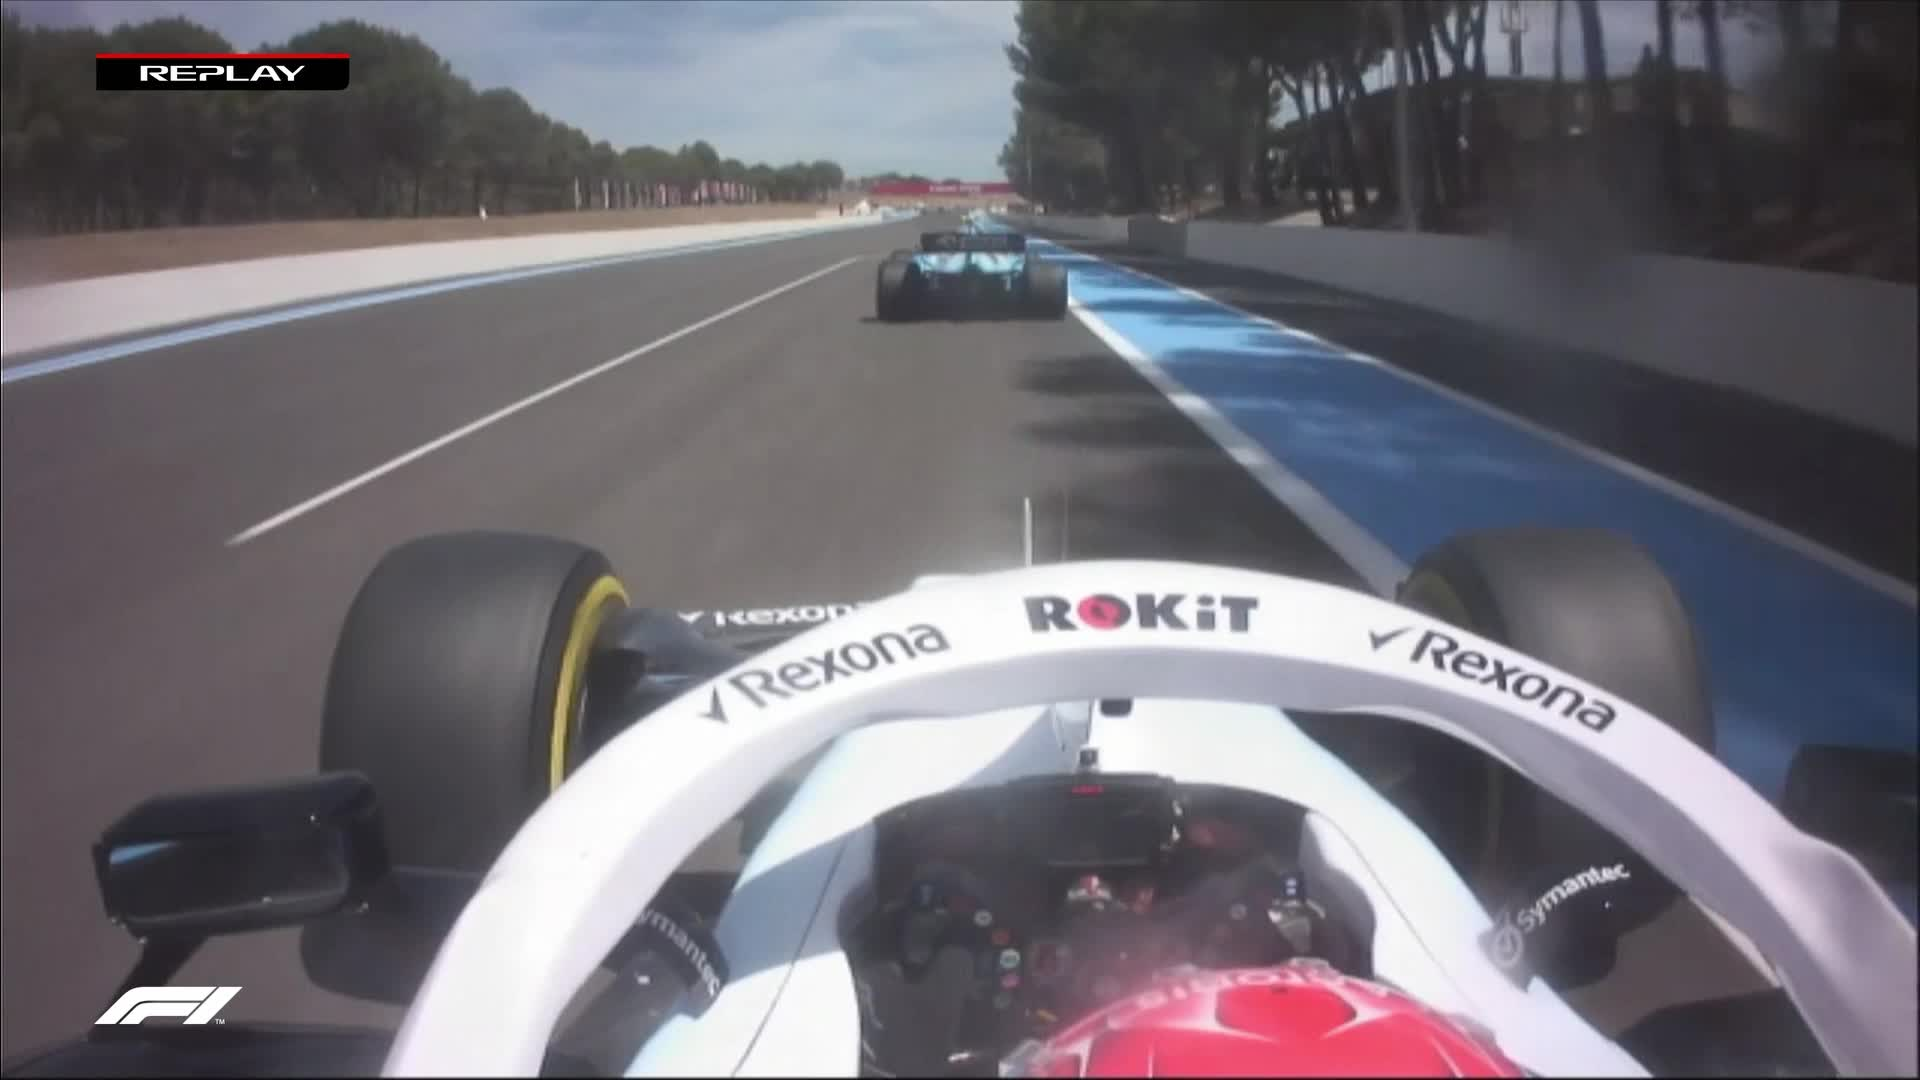 FRENCH GP: Russell takes out marker board in battle with Kubica